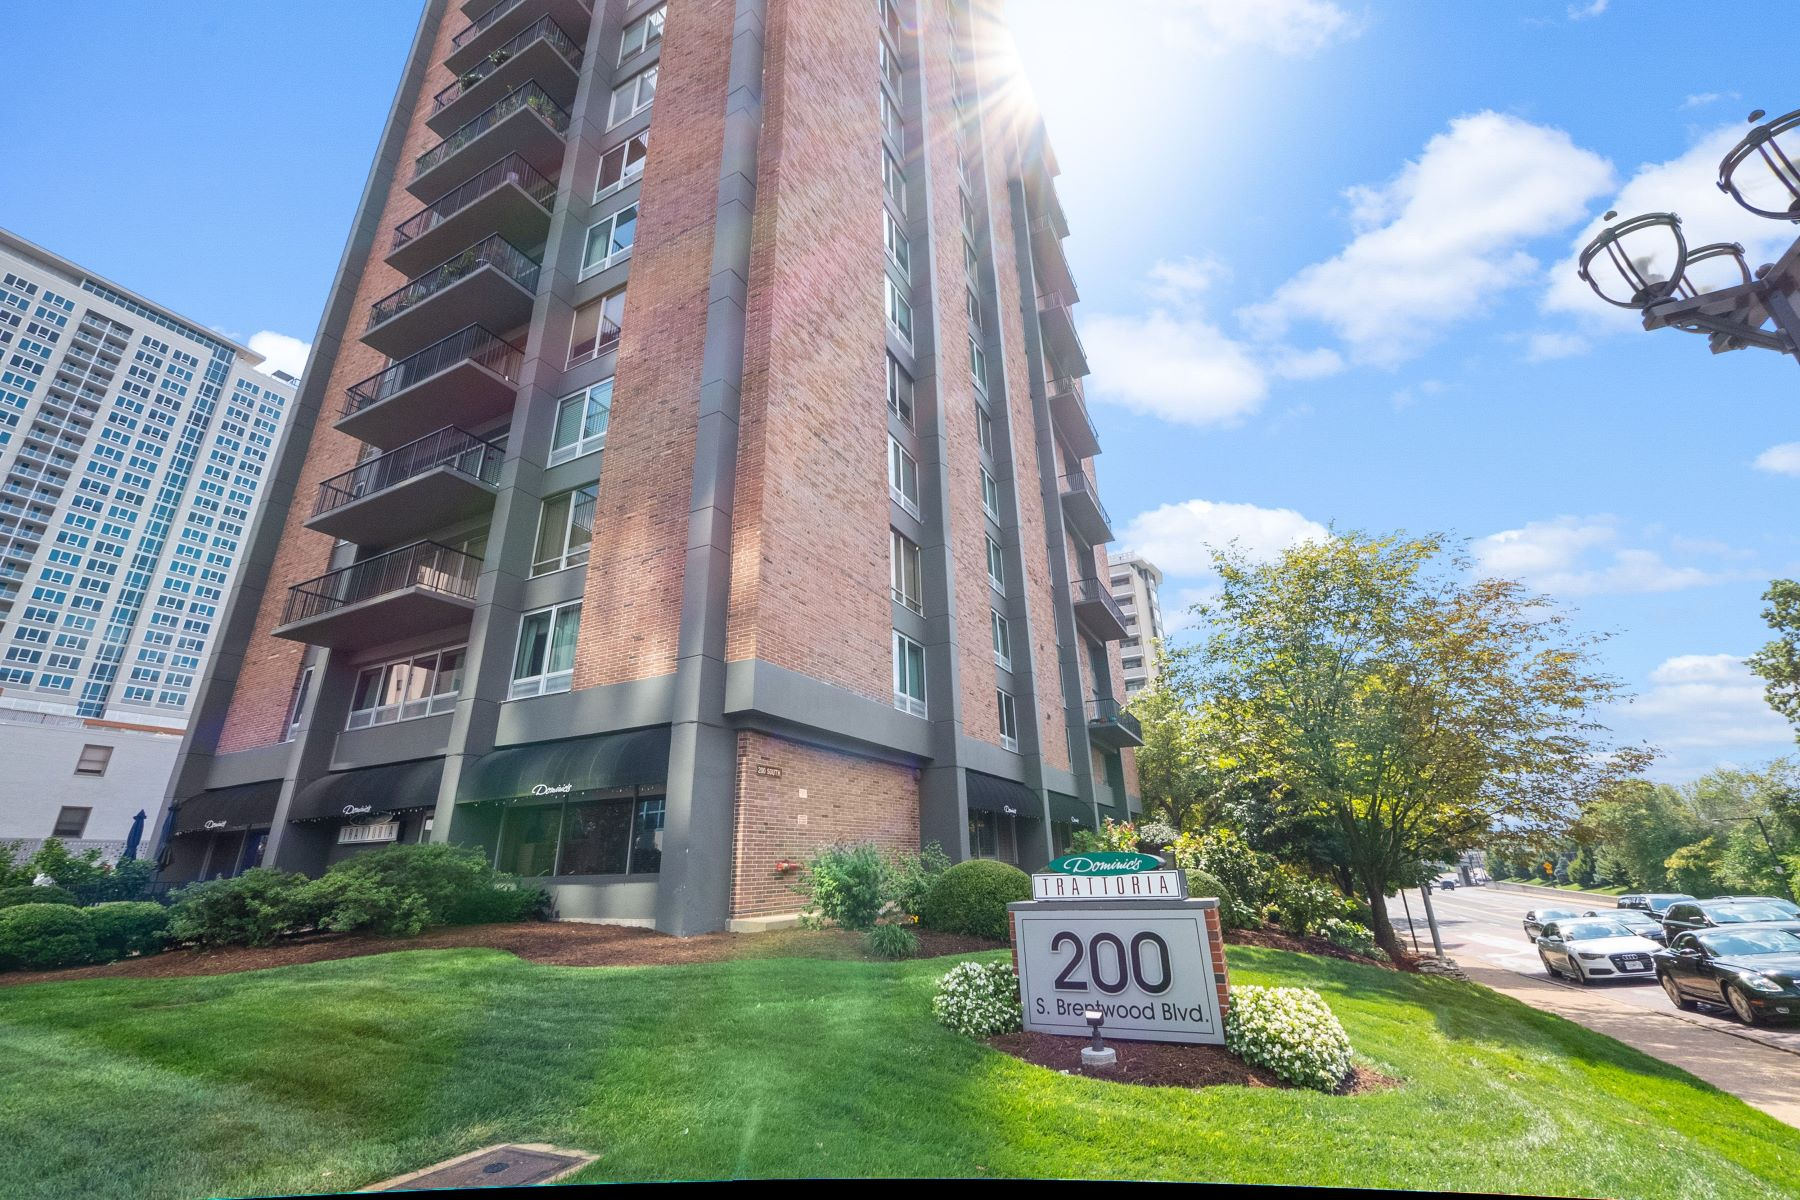 Property for Sale at Rare Opportunity for an Efficiency Condo in Clayton! 200 South Brentwood Boulevard Unit 2B, Clayton, Missouri 63105 United States